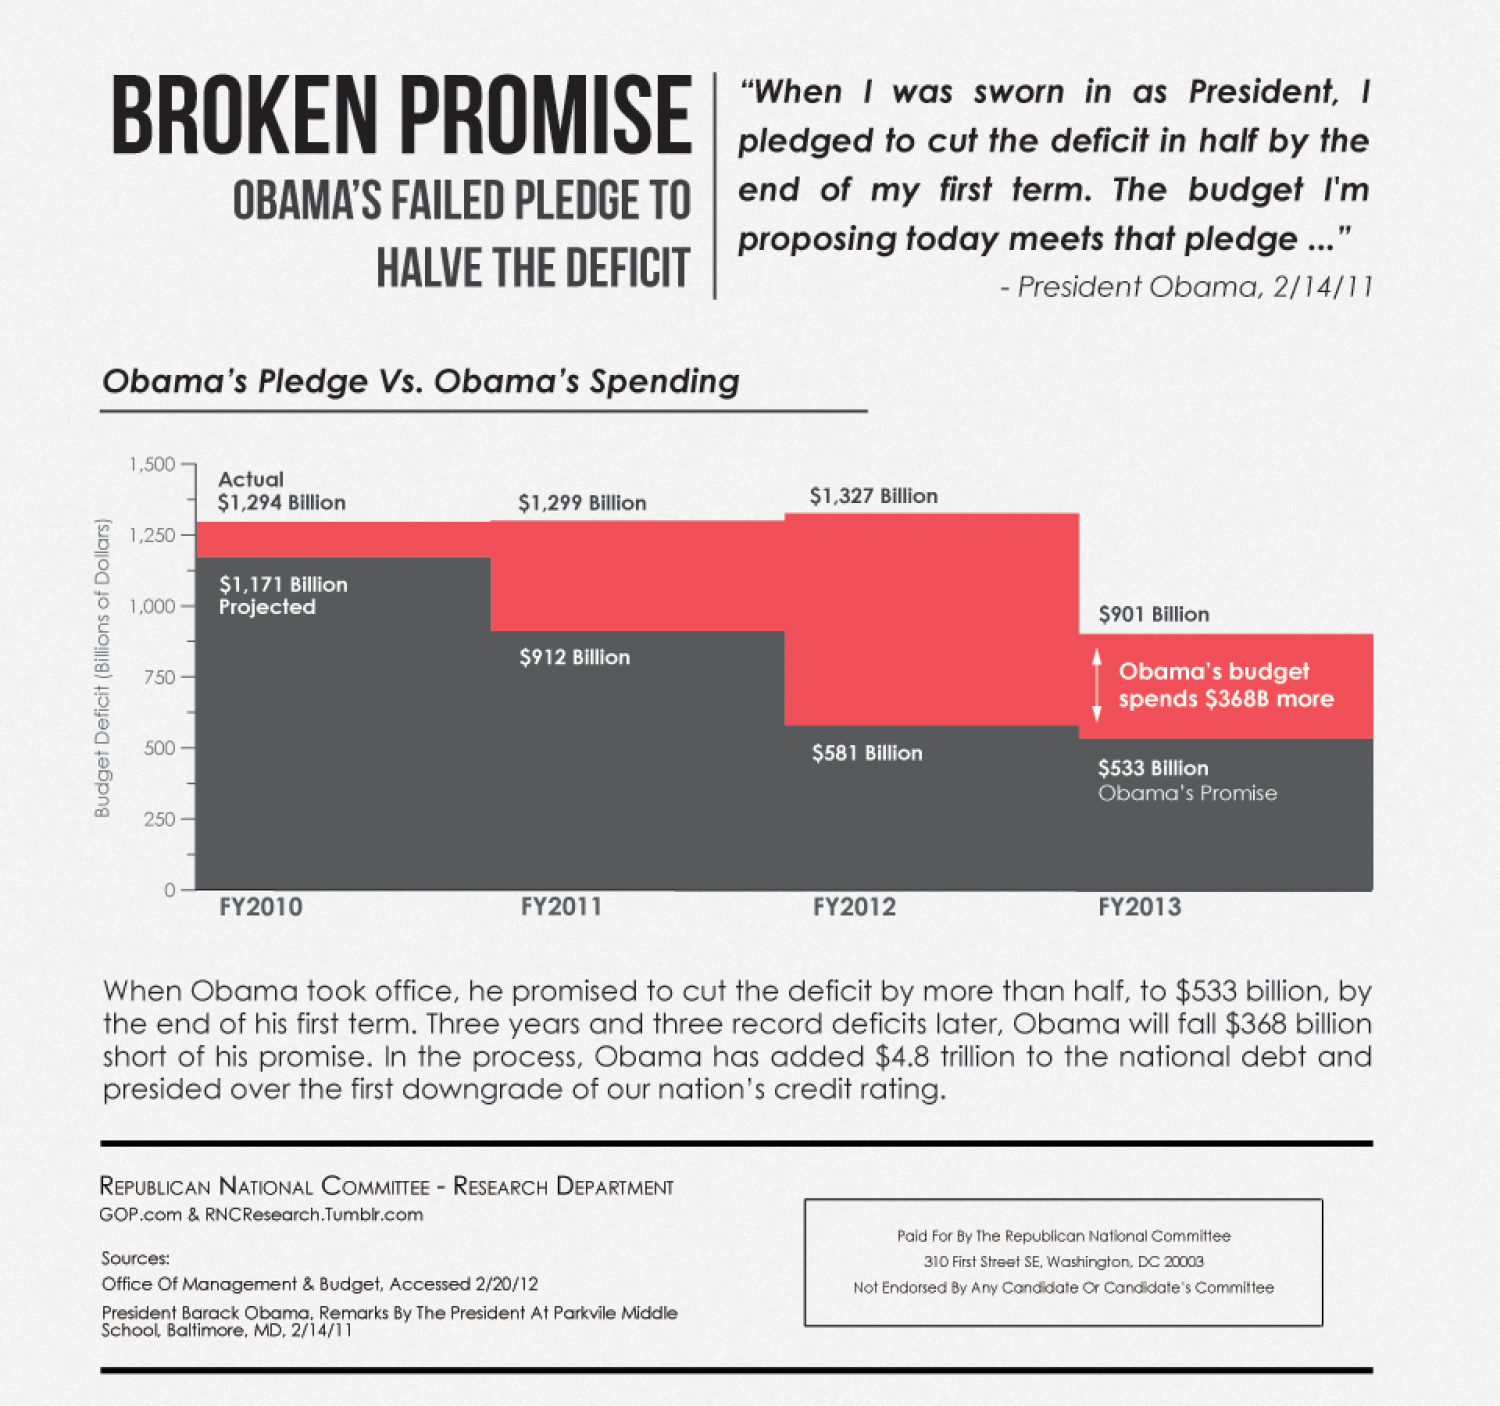 Obama's Broken Deficit Promise Infographic